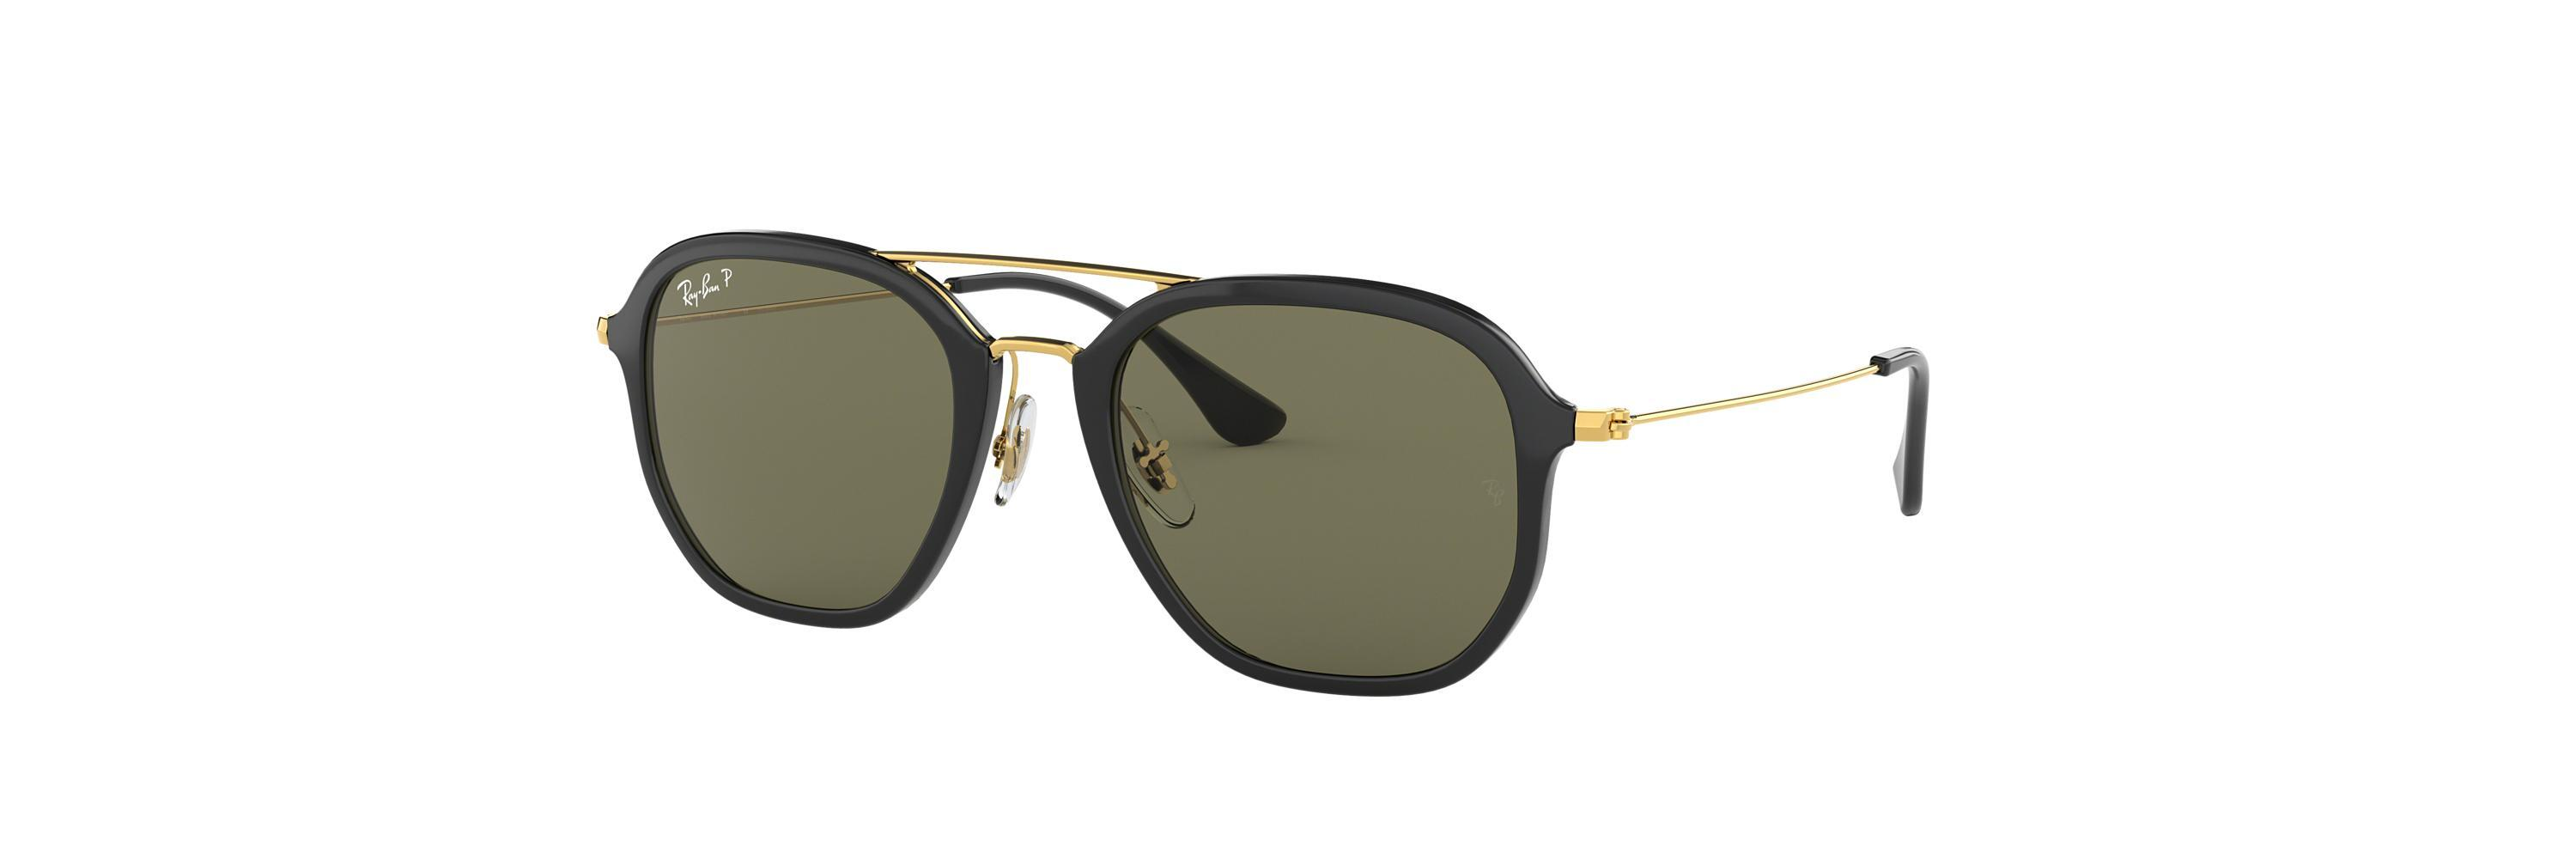 b9bff9b896 Lyst - Ray-Ban Rb4273 for Men